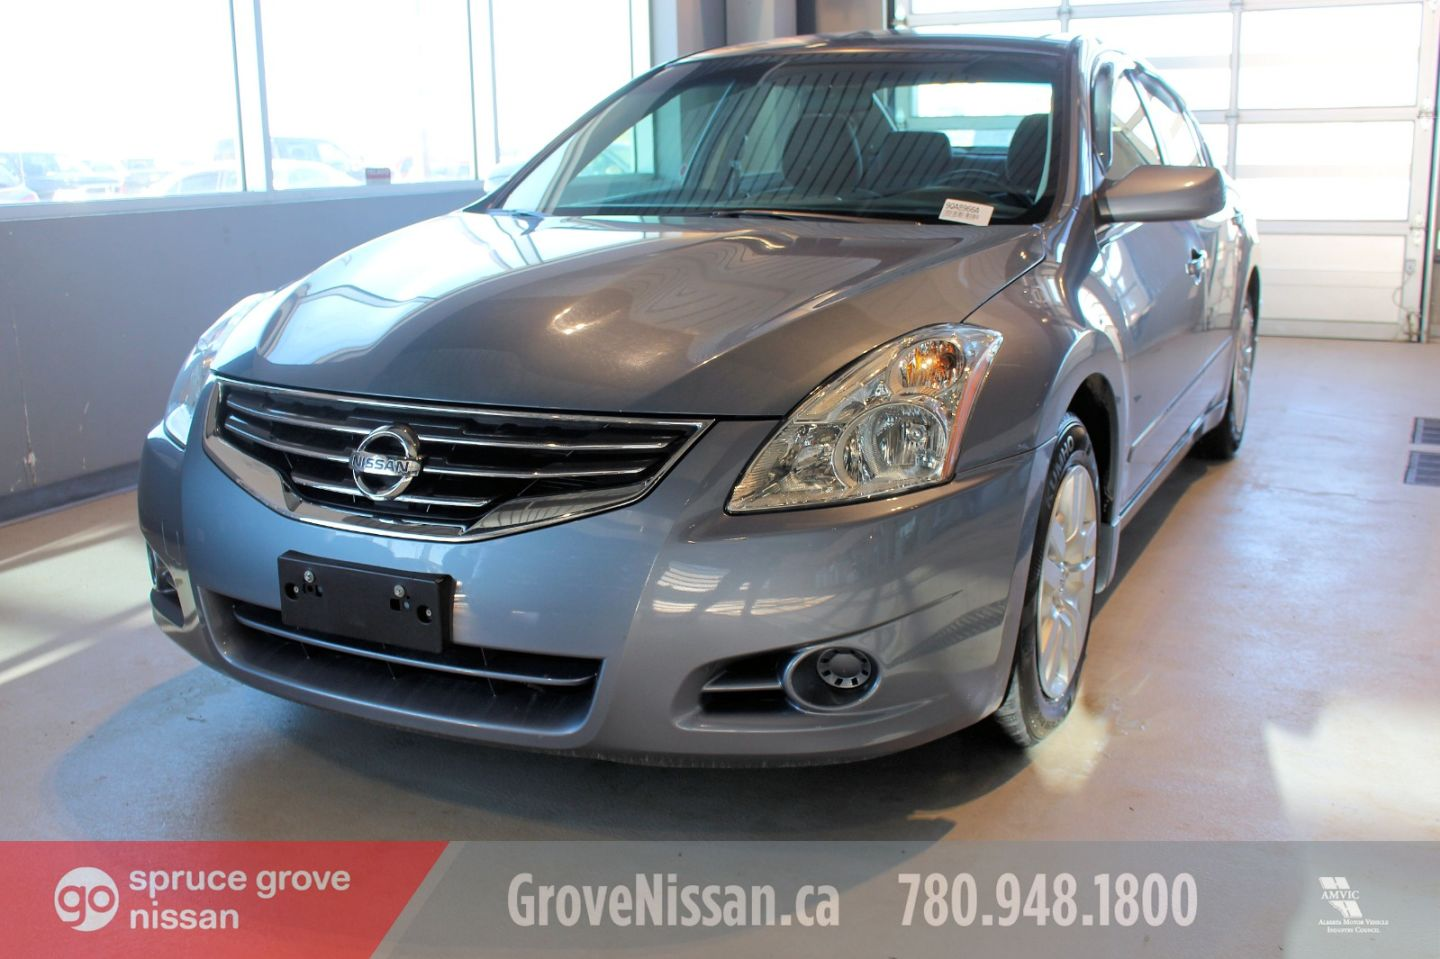 2010 Nissan Altima  for sale in Spruce Grove, Alberta